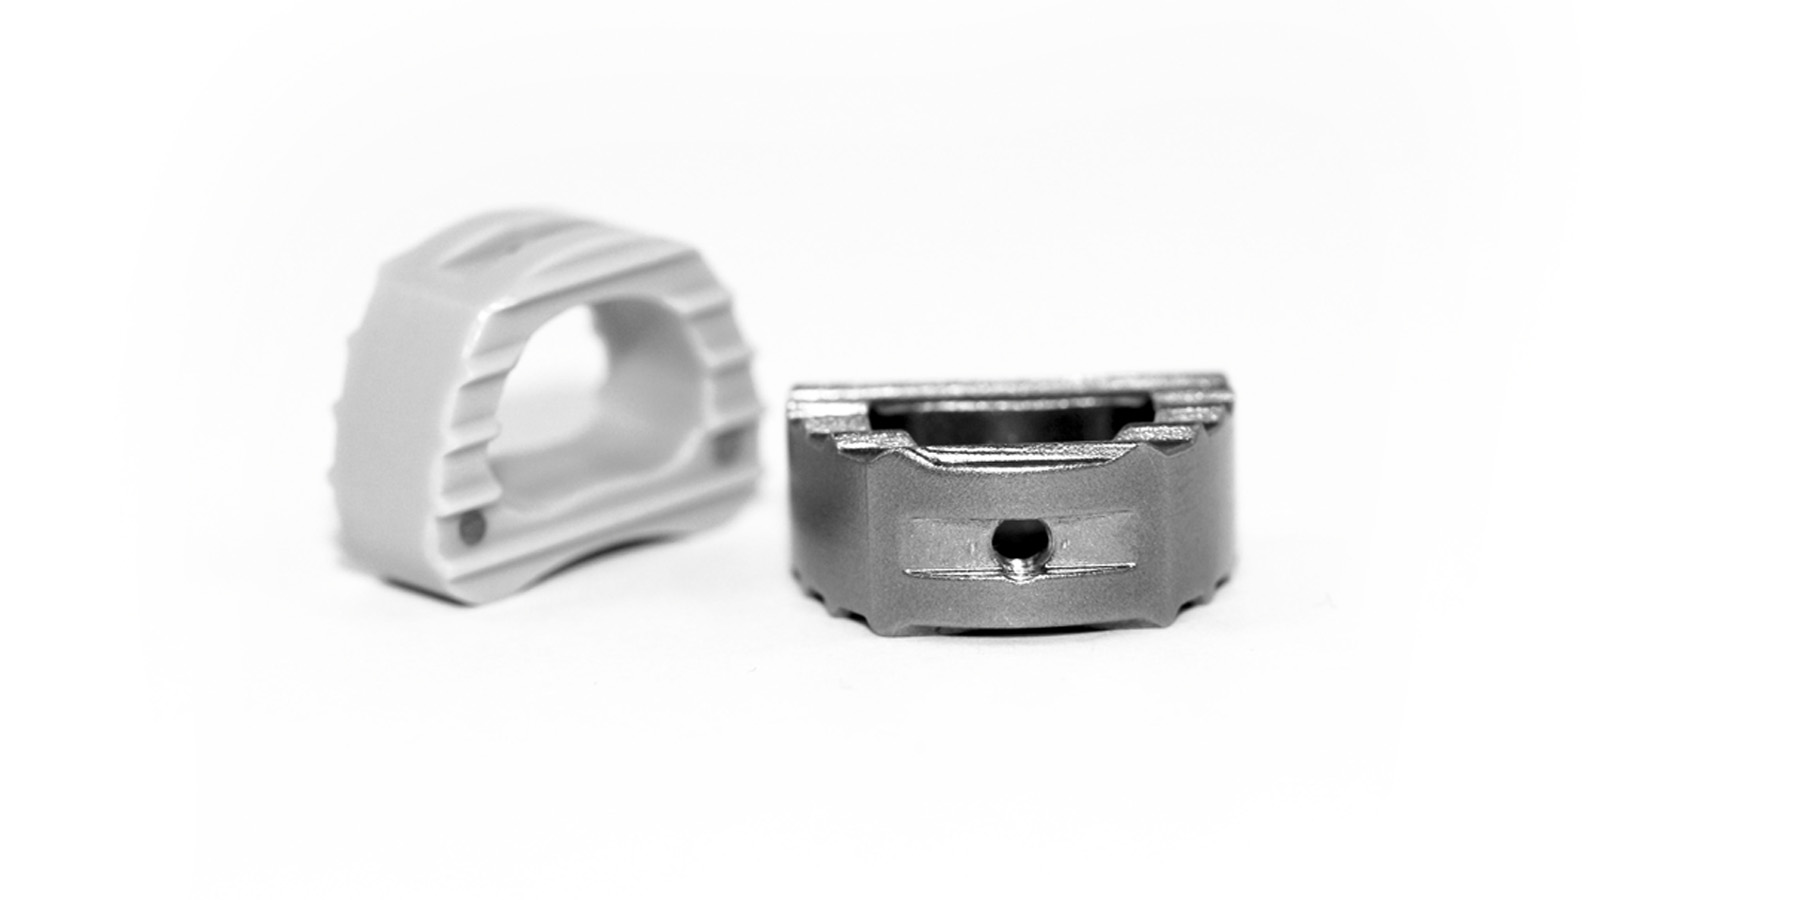 neuro-france-implants-pm-cage 2